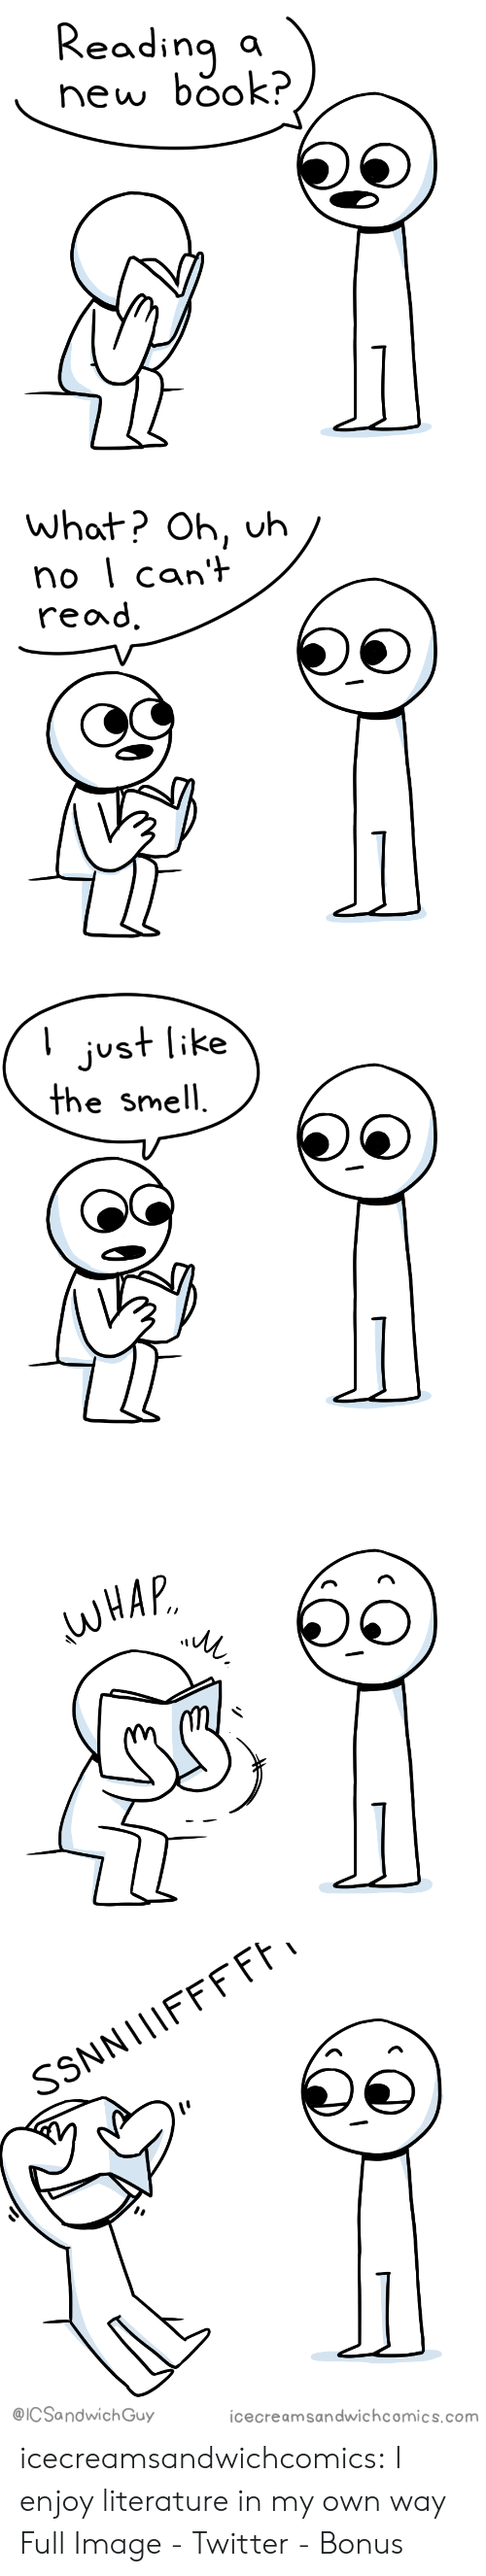 Whap: Reading  book?  new   what? Oh, uh  no can't  read.   just like  the smell.   WHAP   SSNNI|IFFFF  @ICSandwich Guy  icecreamsandwichcomics.com icecreamsandwichcomics:   I enjoy literature in my own way   Full Image - Twitter - Bonus